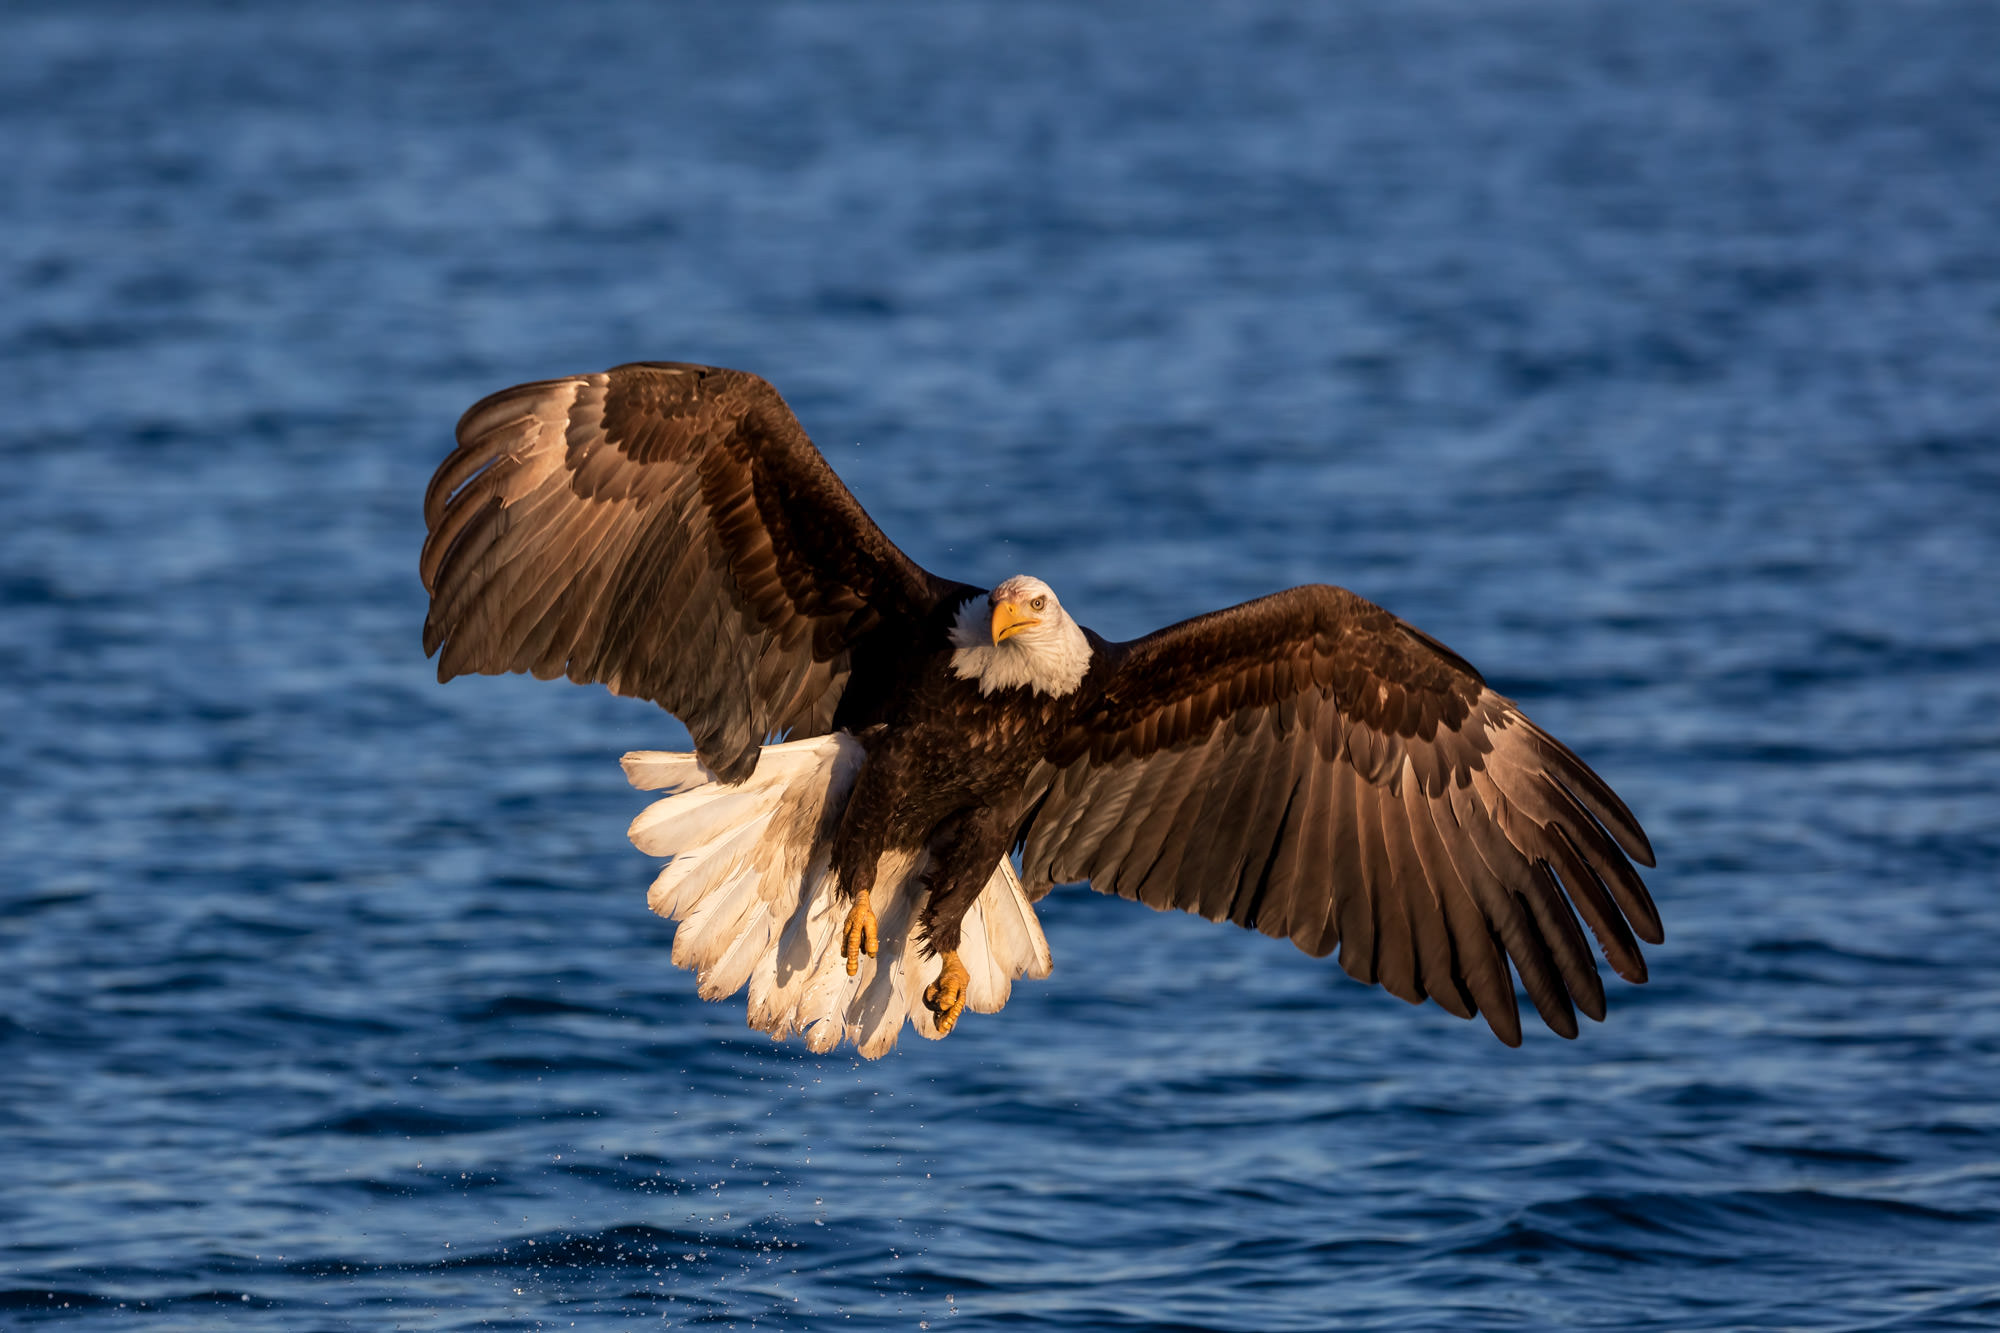 Eagle Fine Art Photography A Limited Edition photograph of a Bald Eagle in a full stall while in flight and fishing at Kachemak...